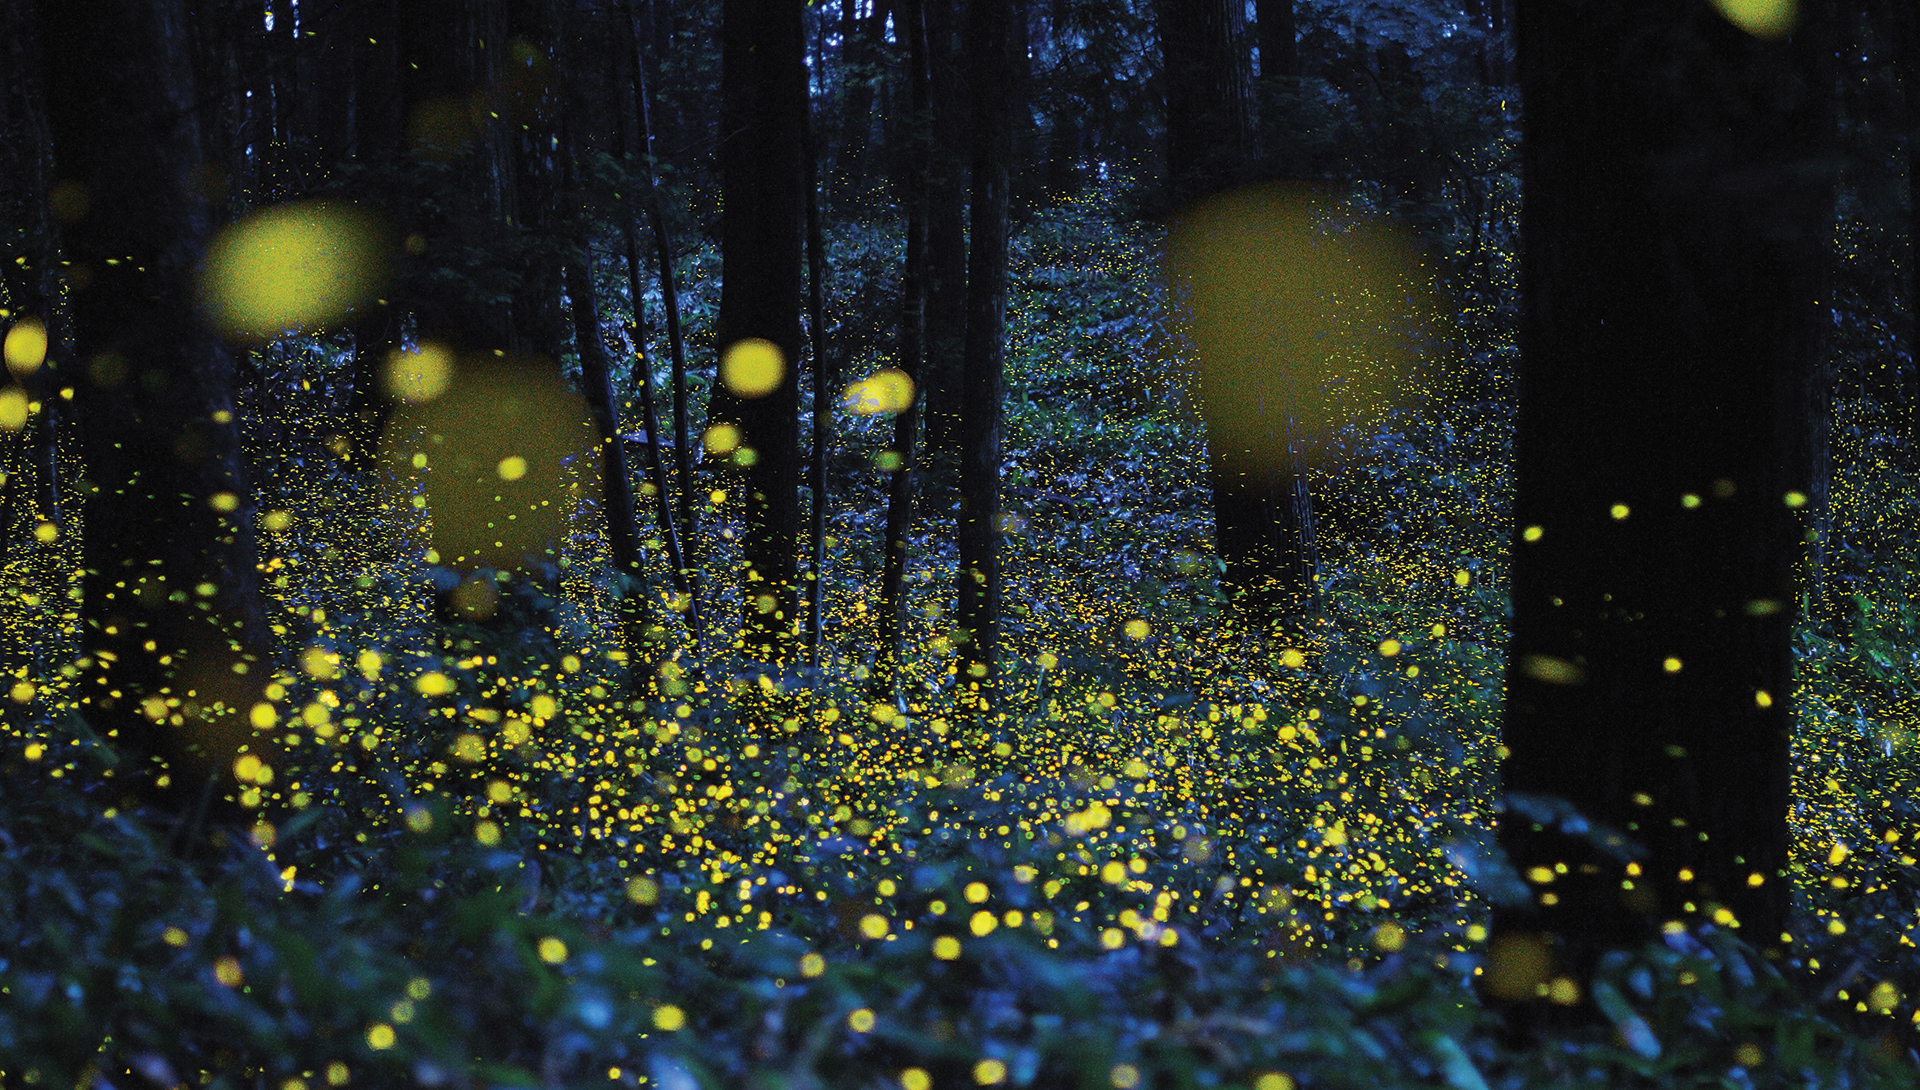 fireflies in forest at night